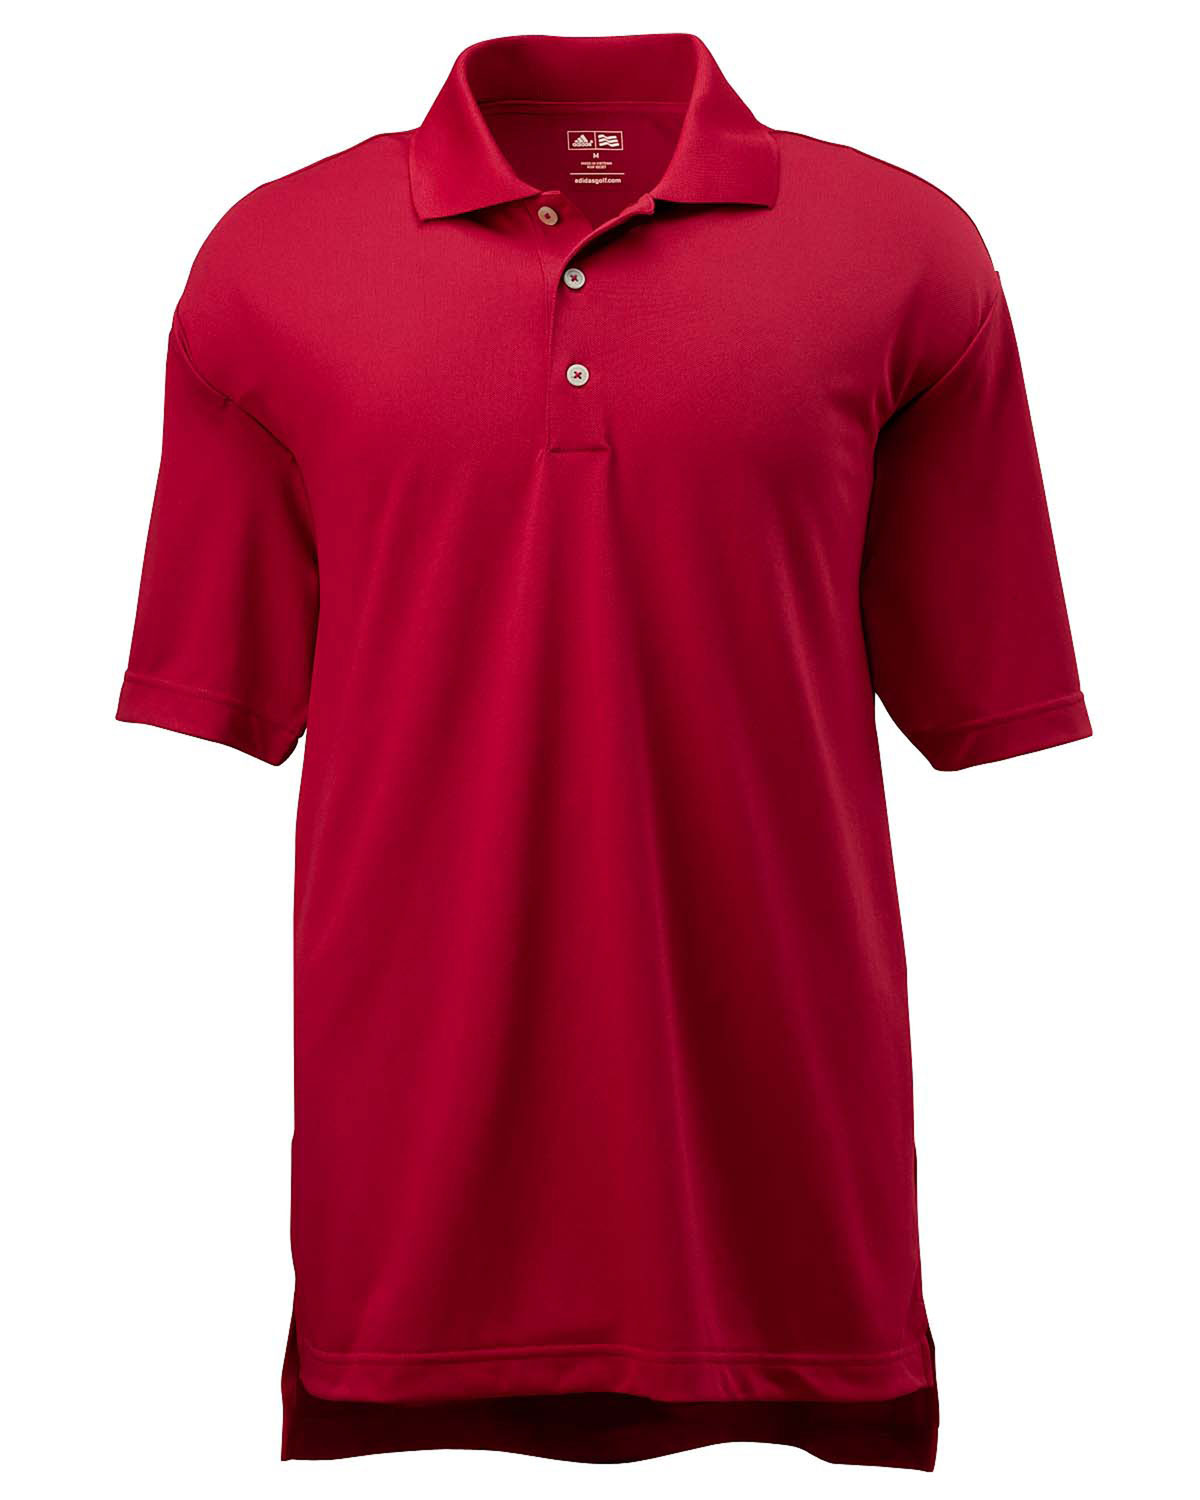 Adidas Golf Mens ClimaLite® Short-Sleeve Piqué Polo